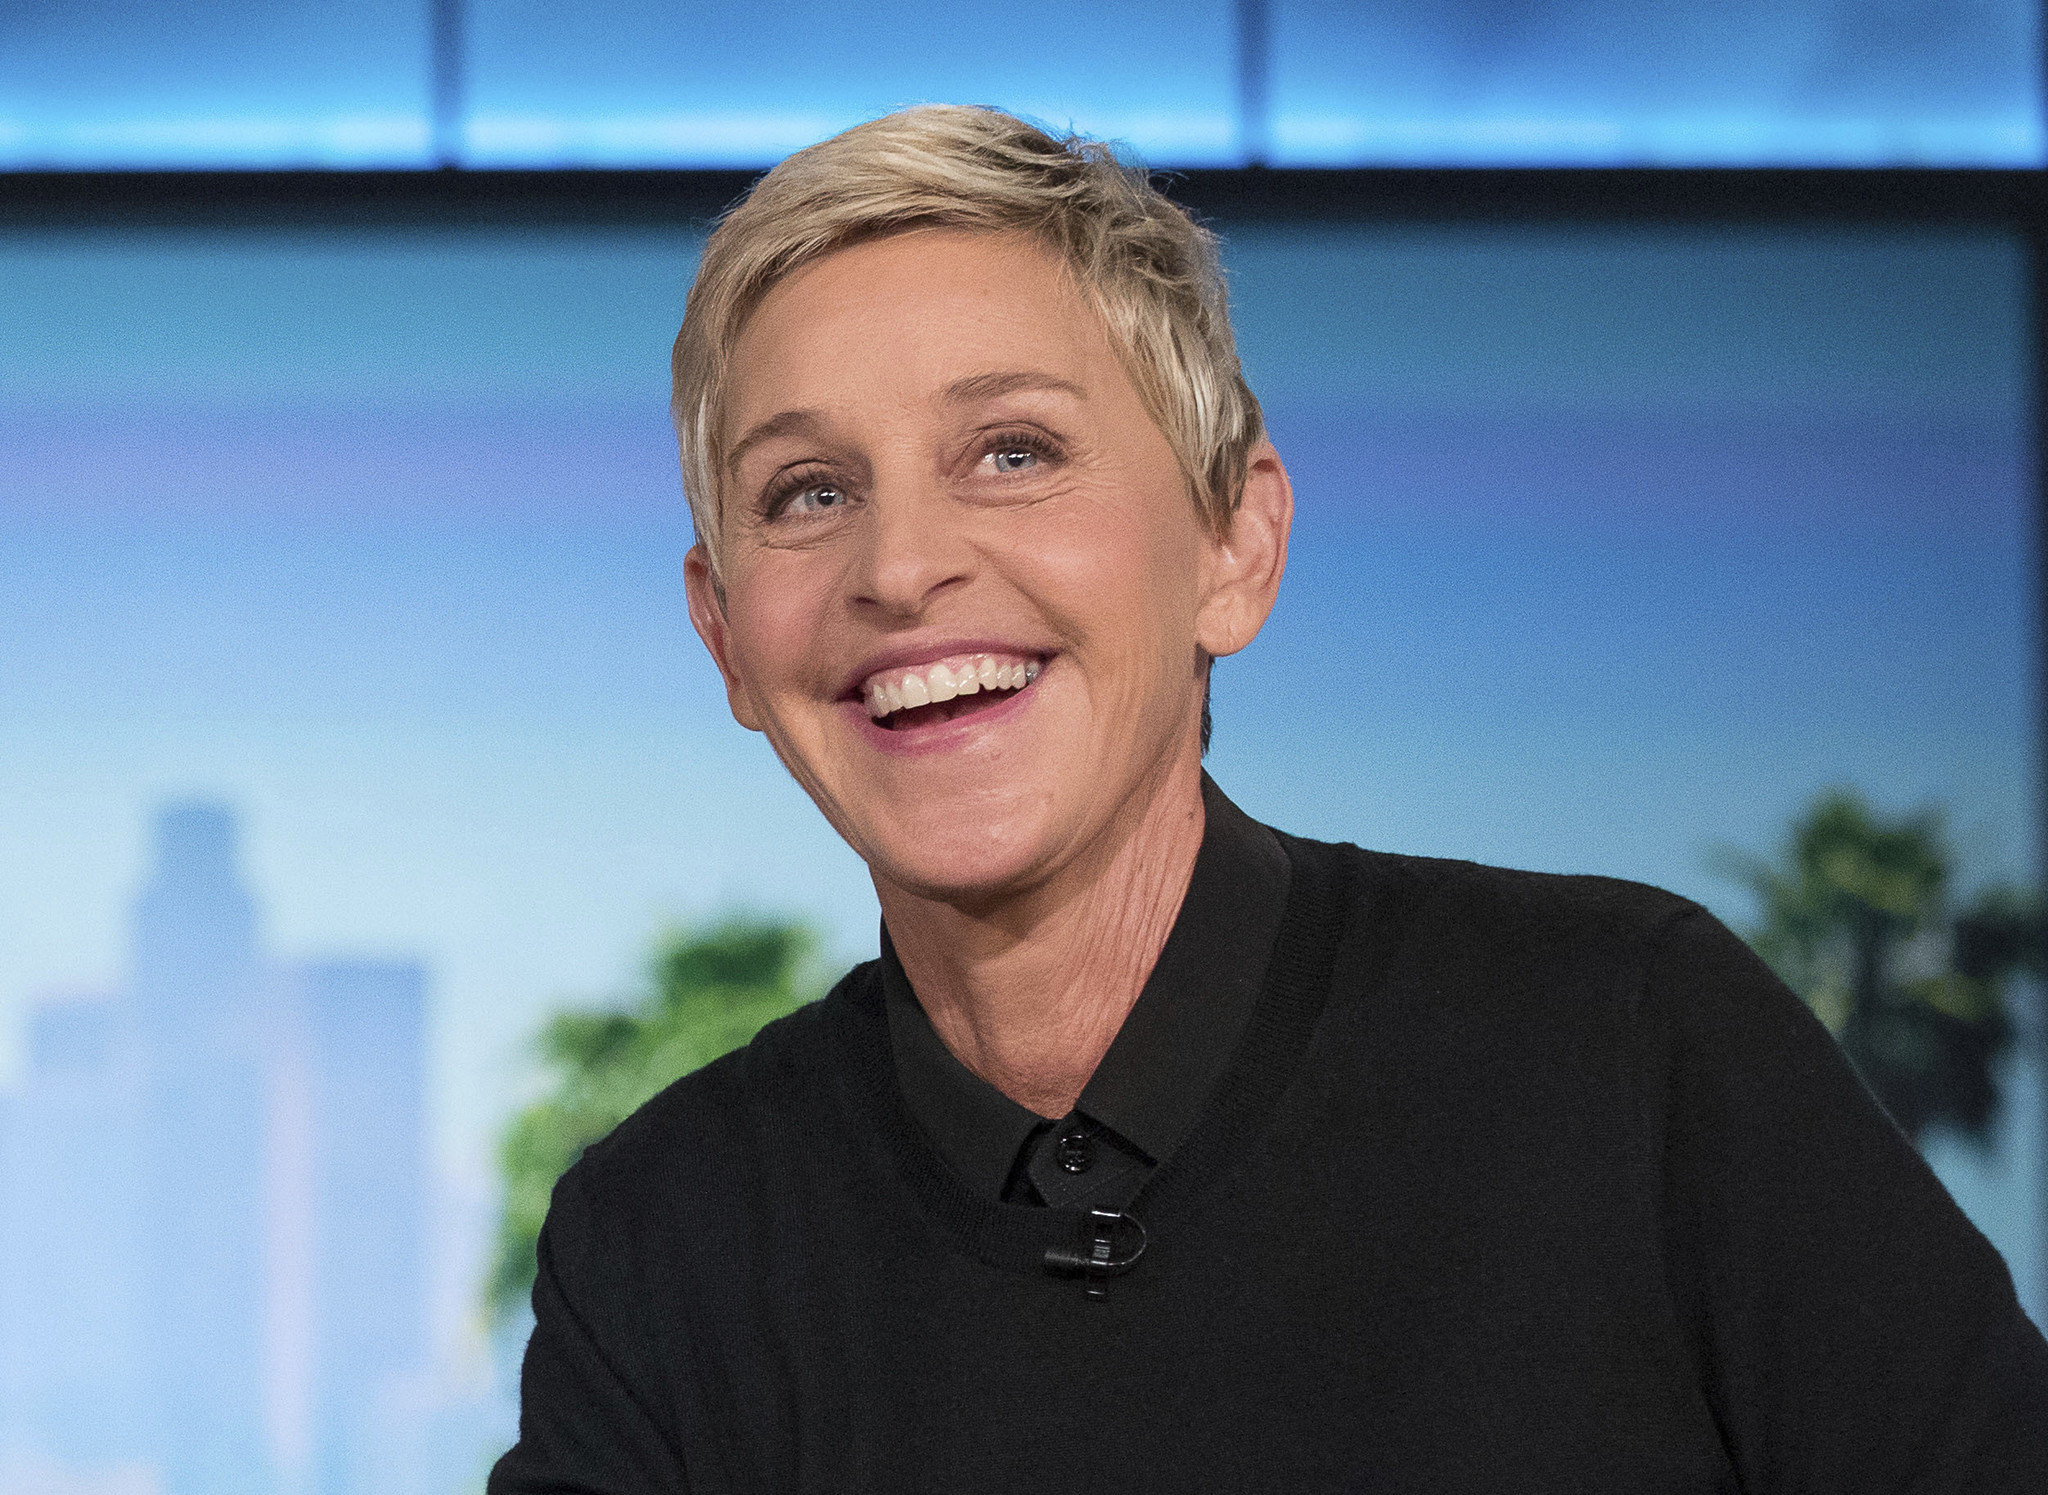 The latest Tweets from Ellen DeGeneres (@TheEllenShow). Comedian, talk show host and ice road trucker. My tweets are real, and they're spectacular. CaliforniaAccount Status: Verified.